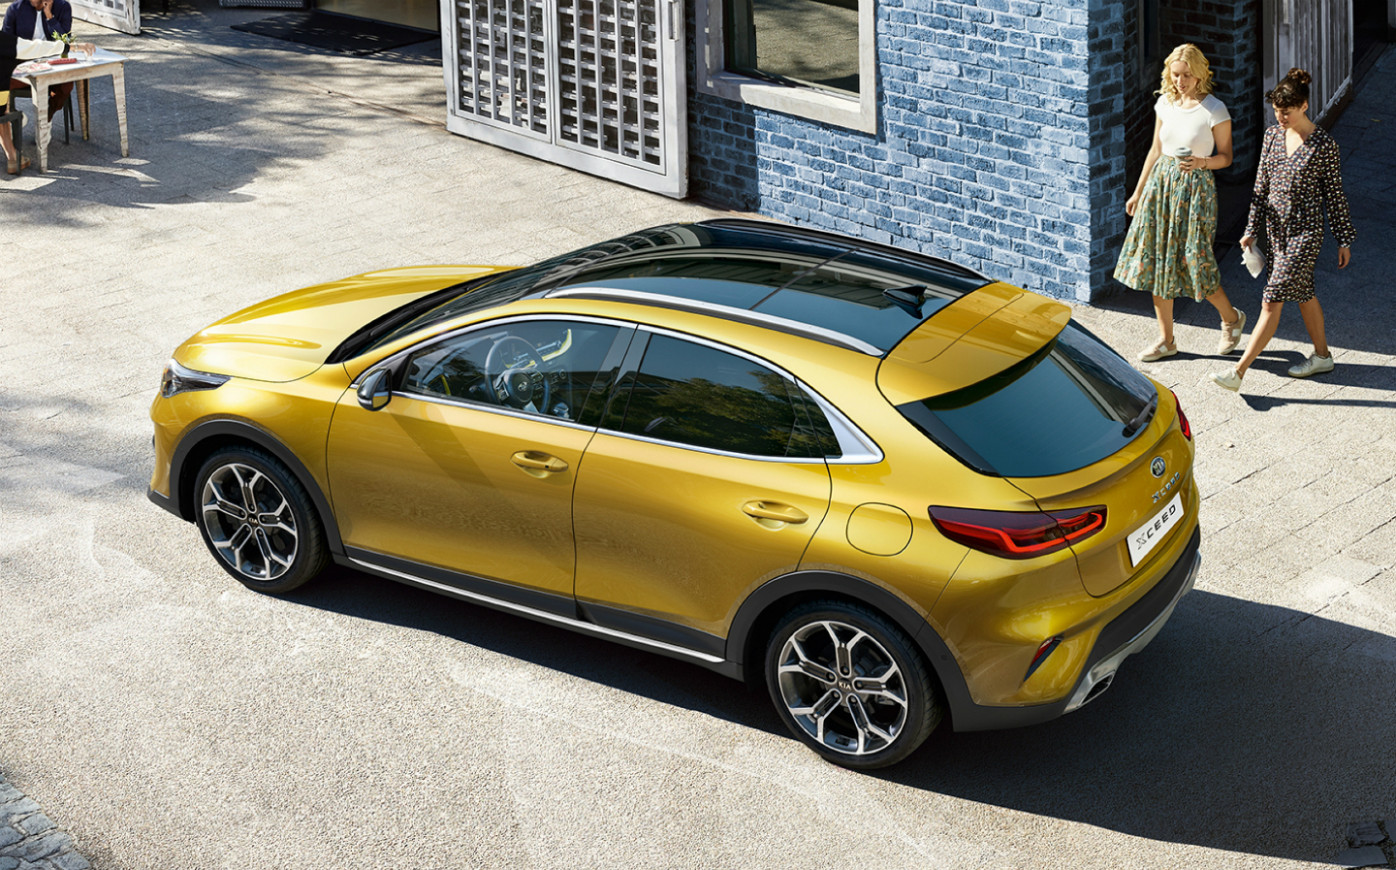 10 Kia XCeed: prices, performance, interior space and release date - kia xceed 2020 price